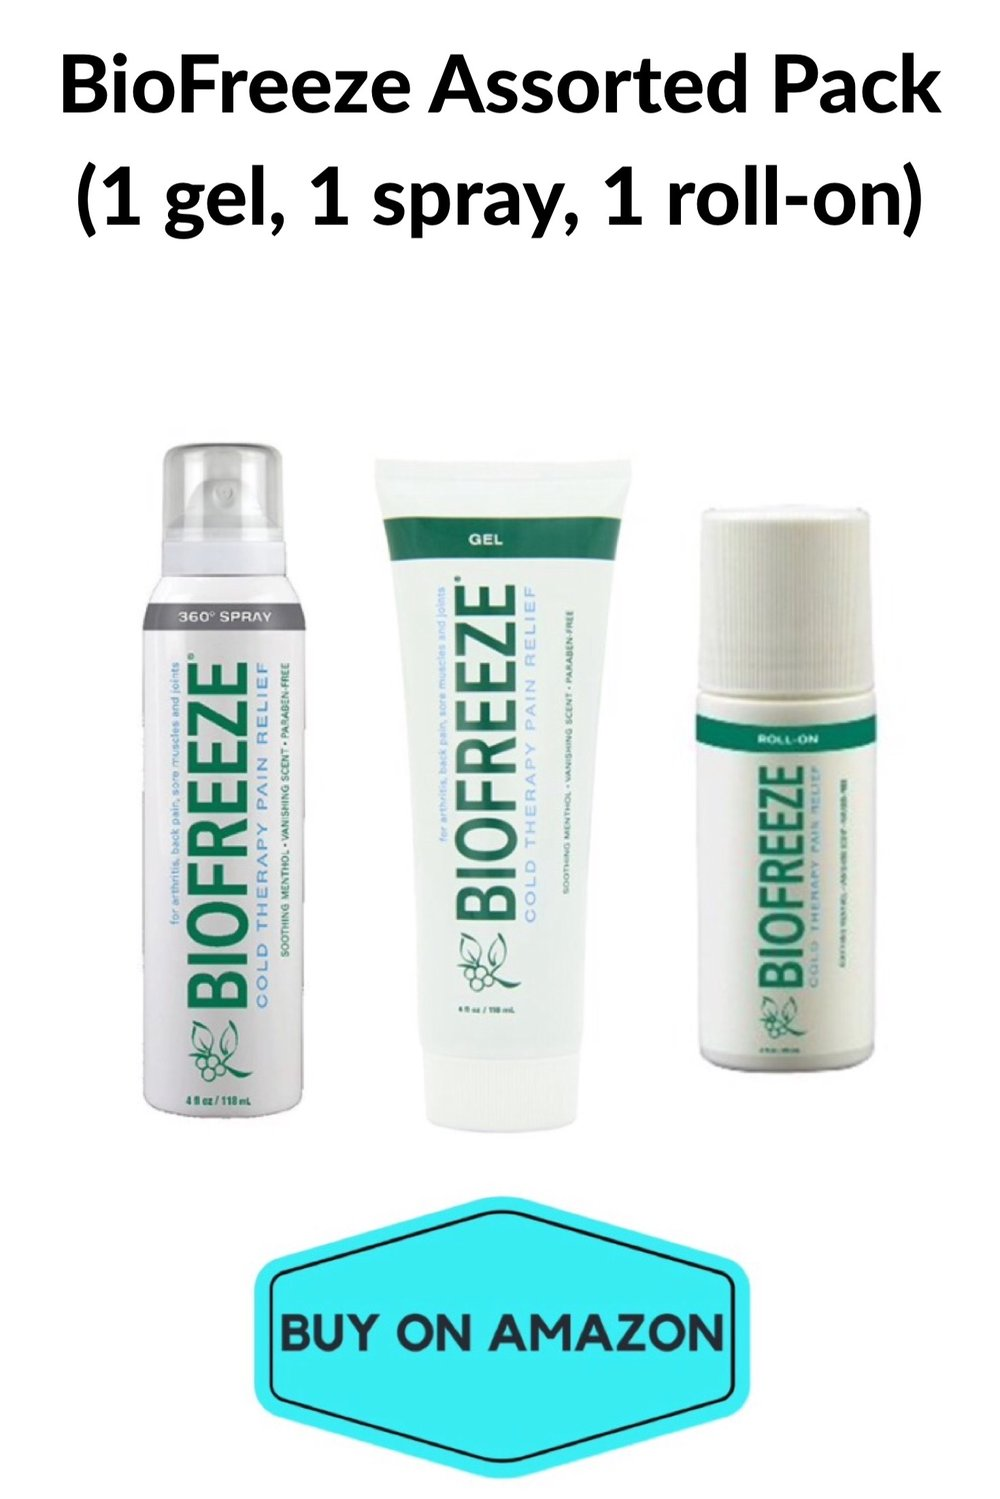 BioFreeze Assorted Pack